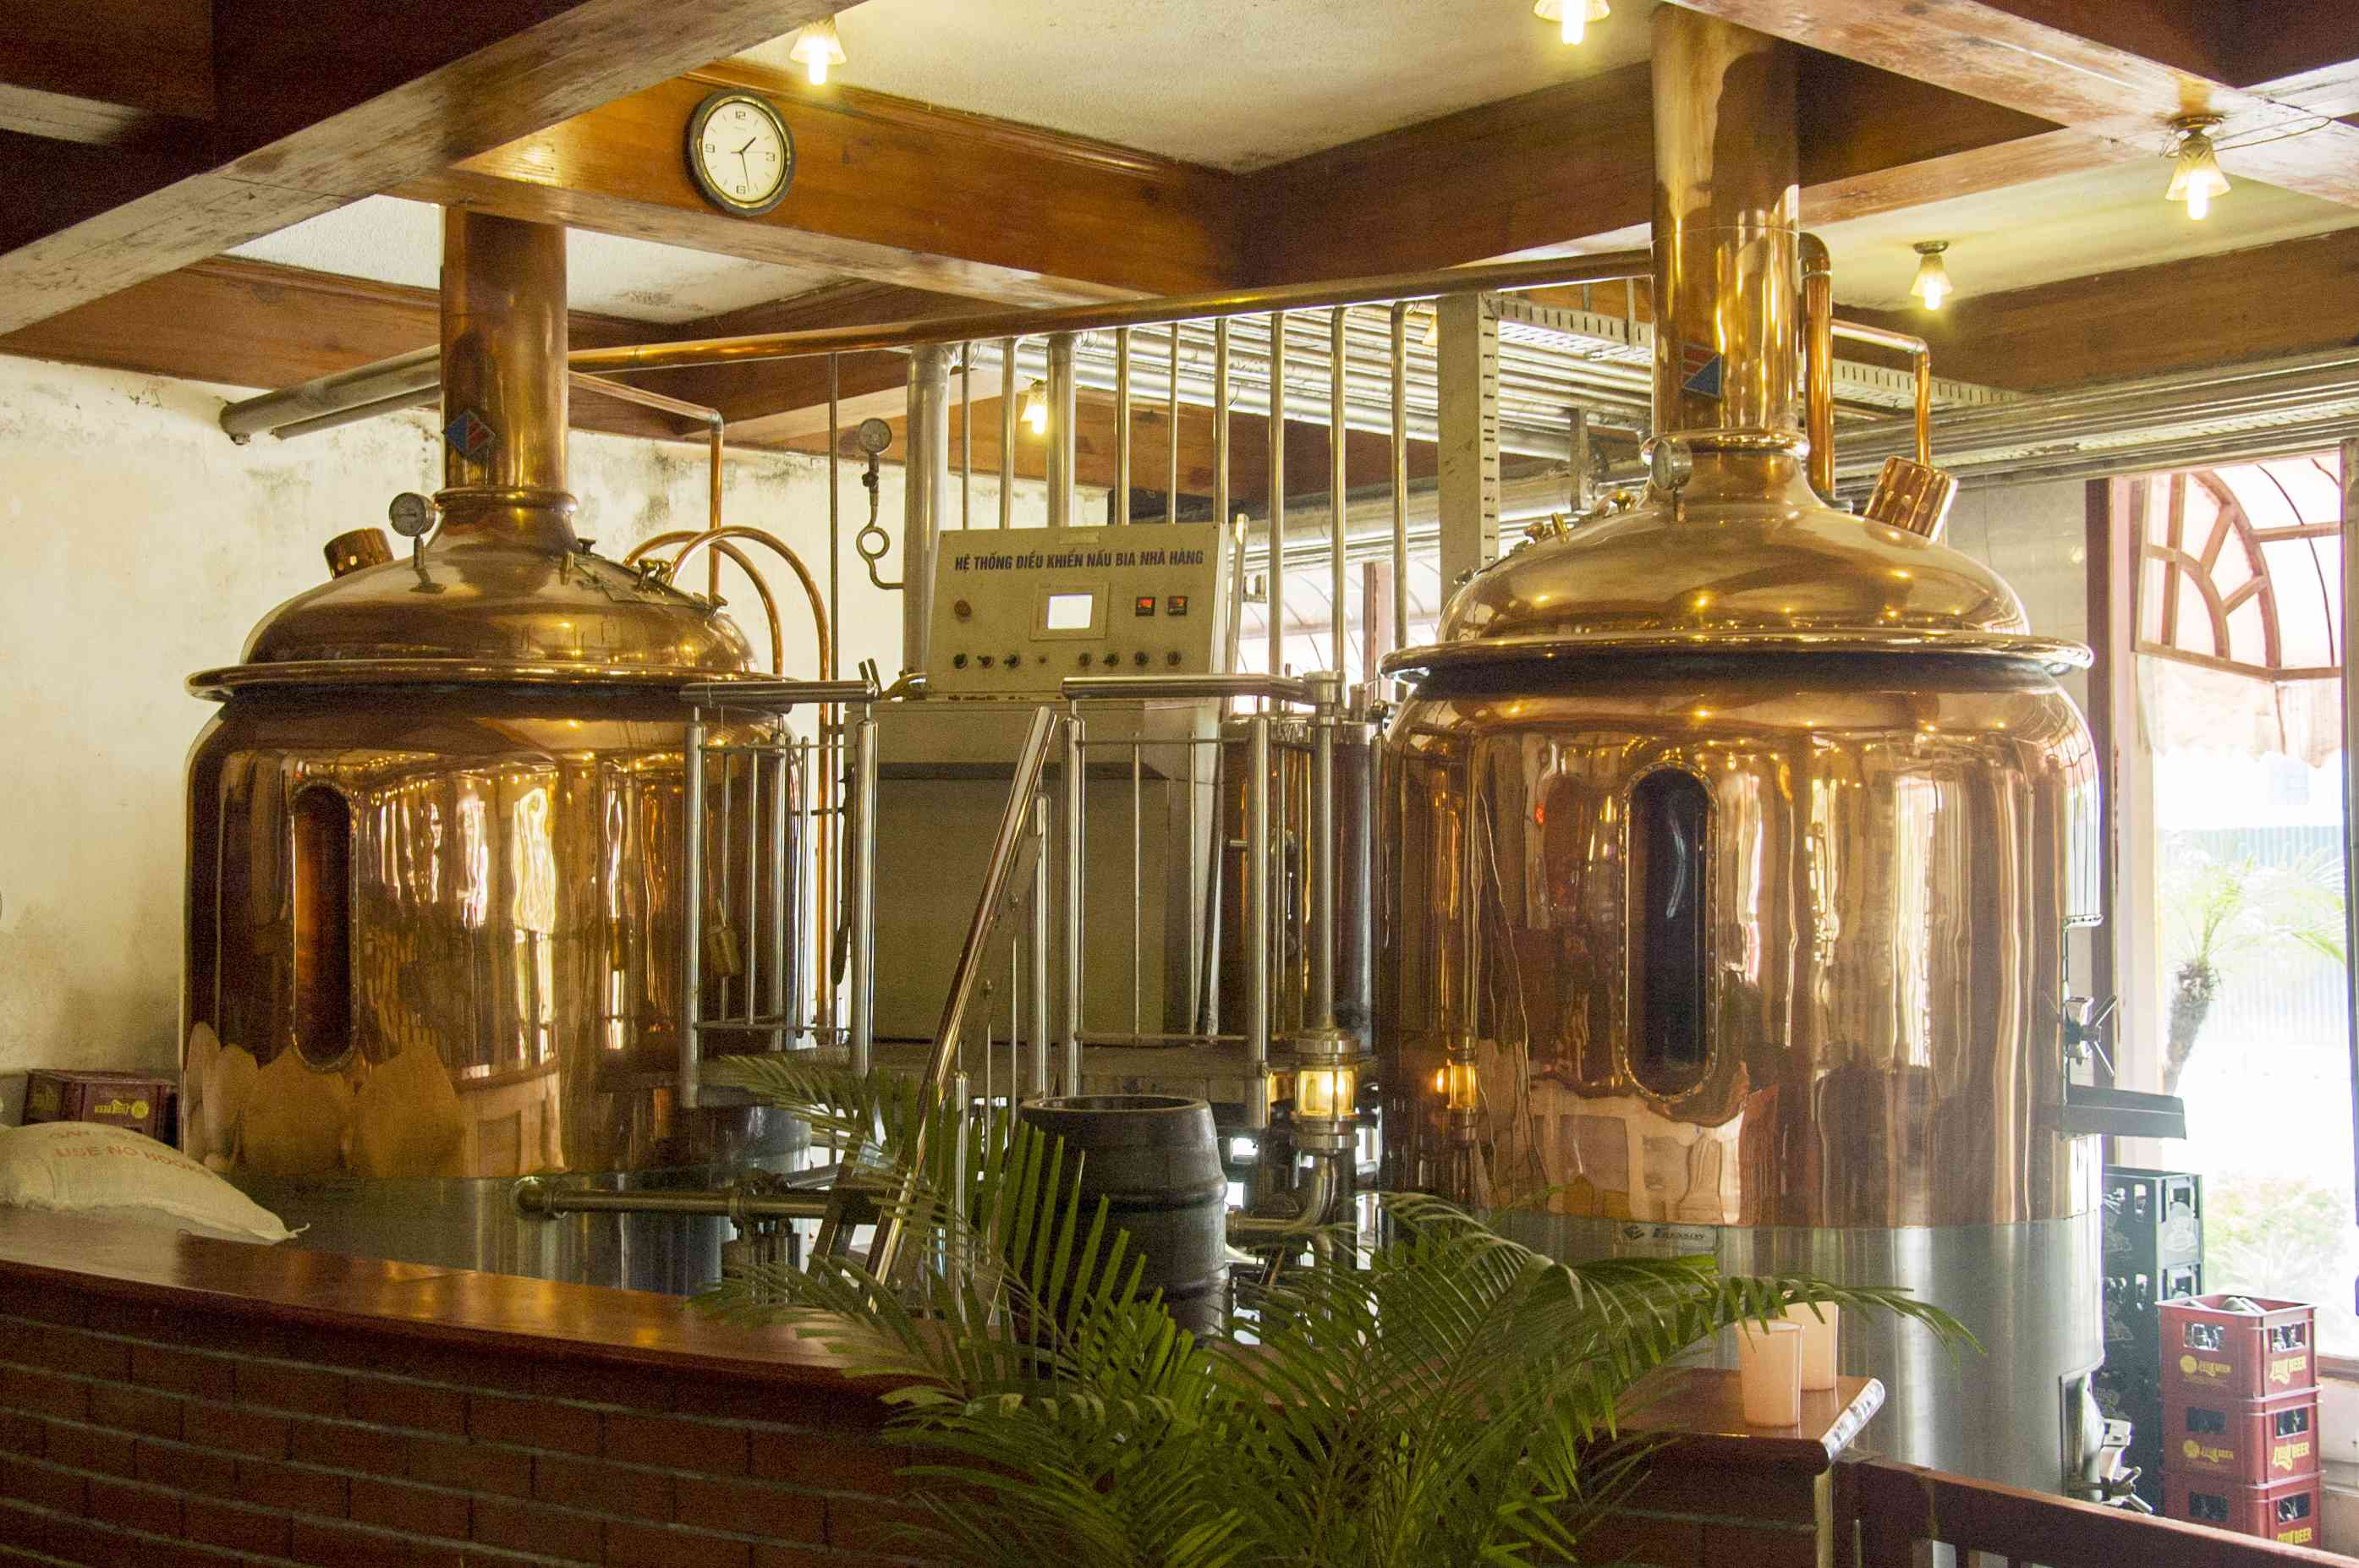 Vessel Brewhouse